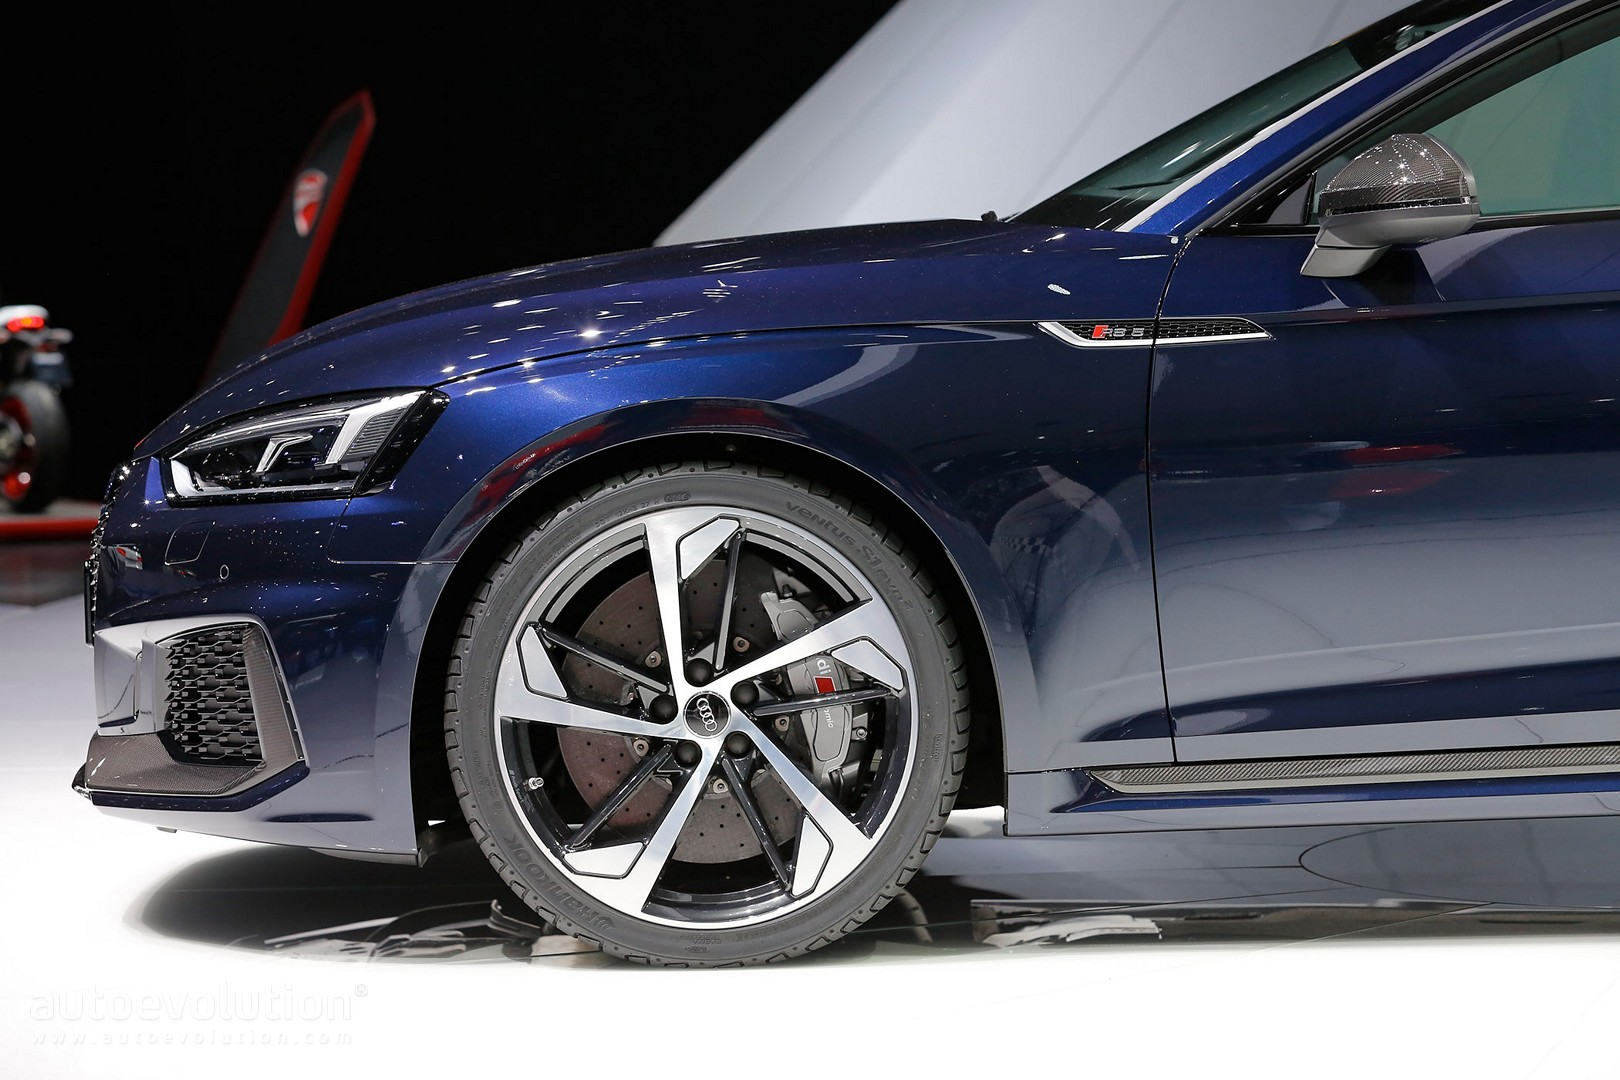 2018 Audi RS5 Looks Sexy in Geneva, But Is 450 HP Enough? - autoevolution